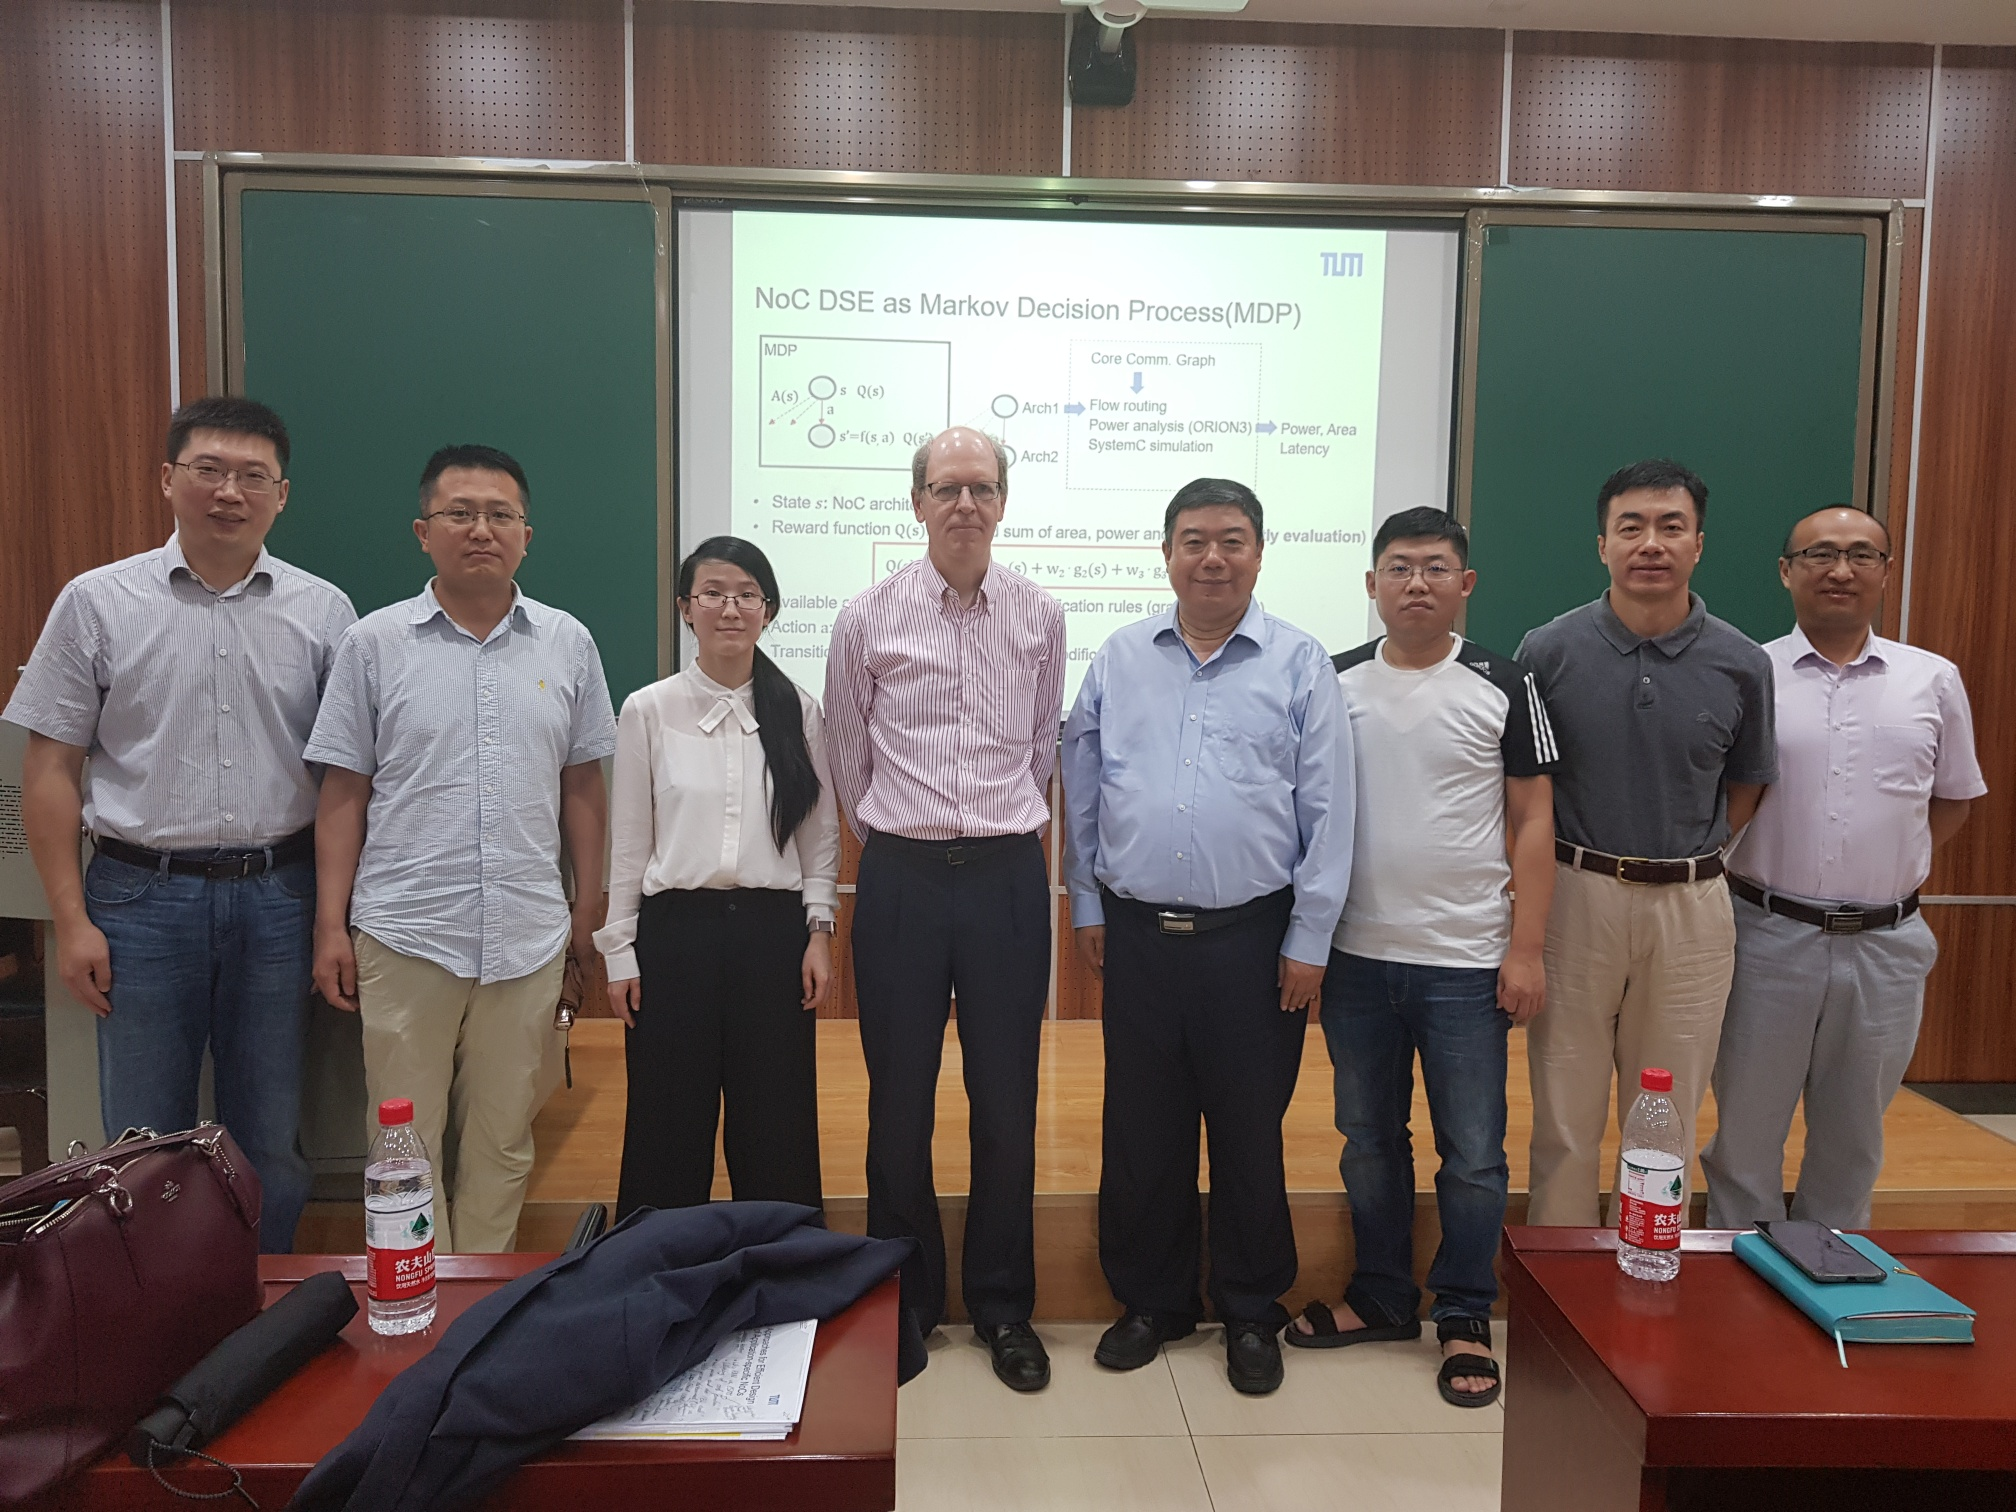 The photo shows Li Zhang and Ulf Schlichtmann together with Prof. Yintang Yang, Vice President of Xidian University, with some of his colleagues.